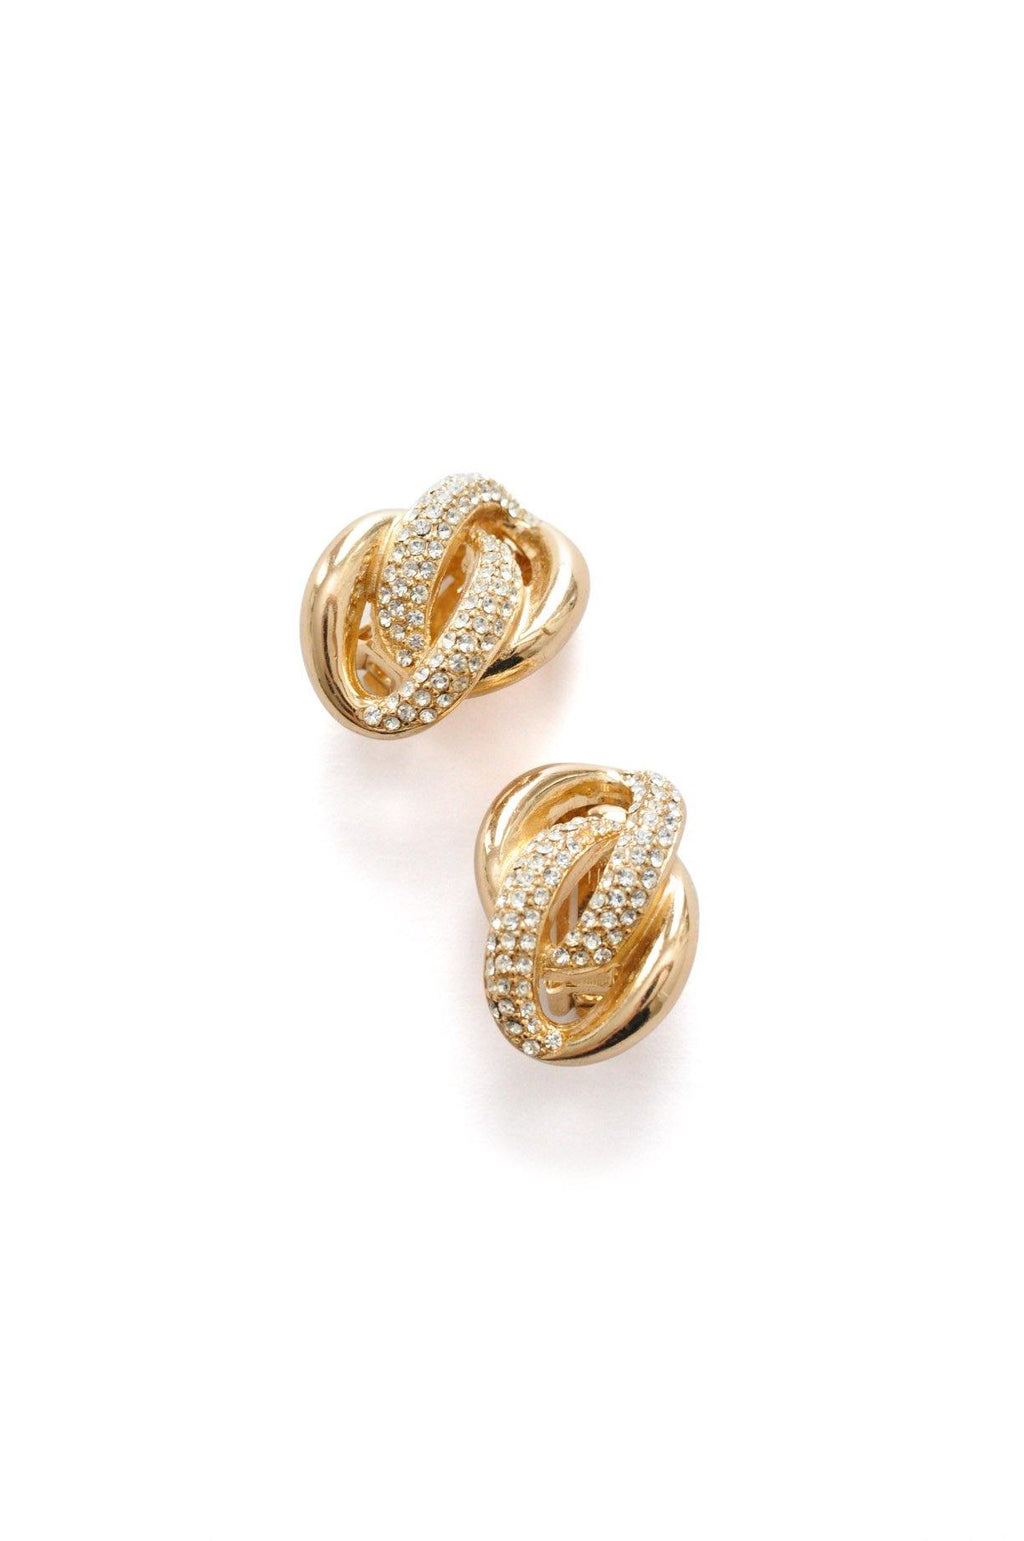 Christian Dior Rhinestone Knot Clip-on Earrings